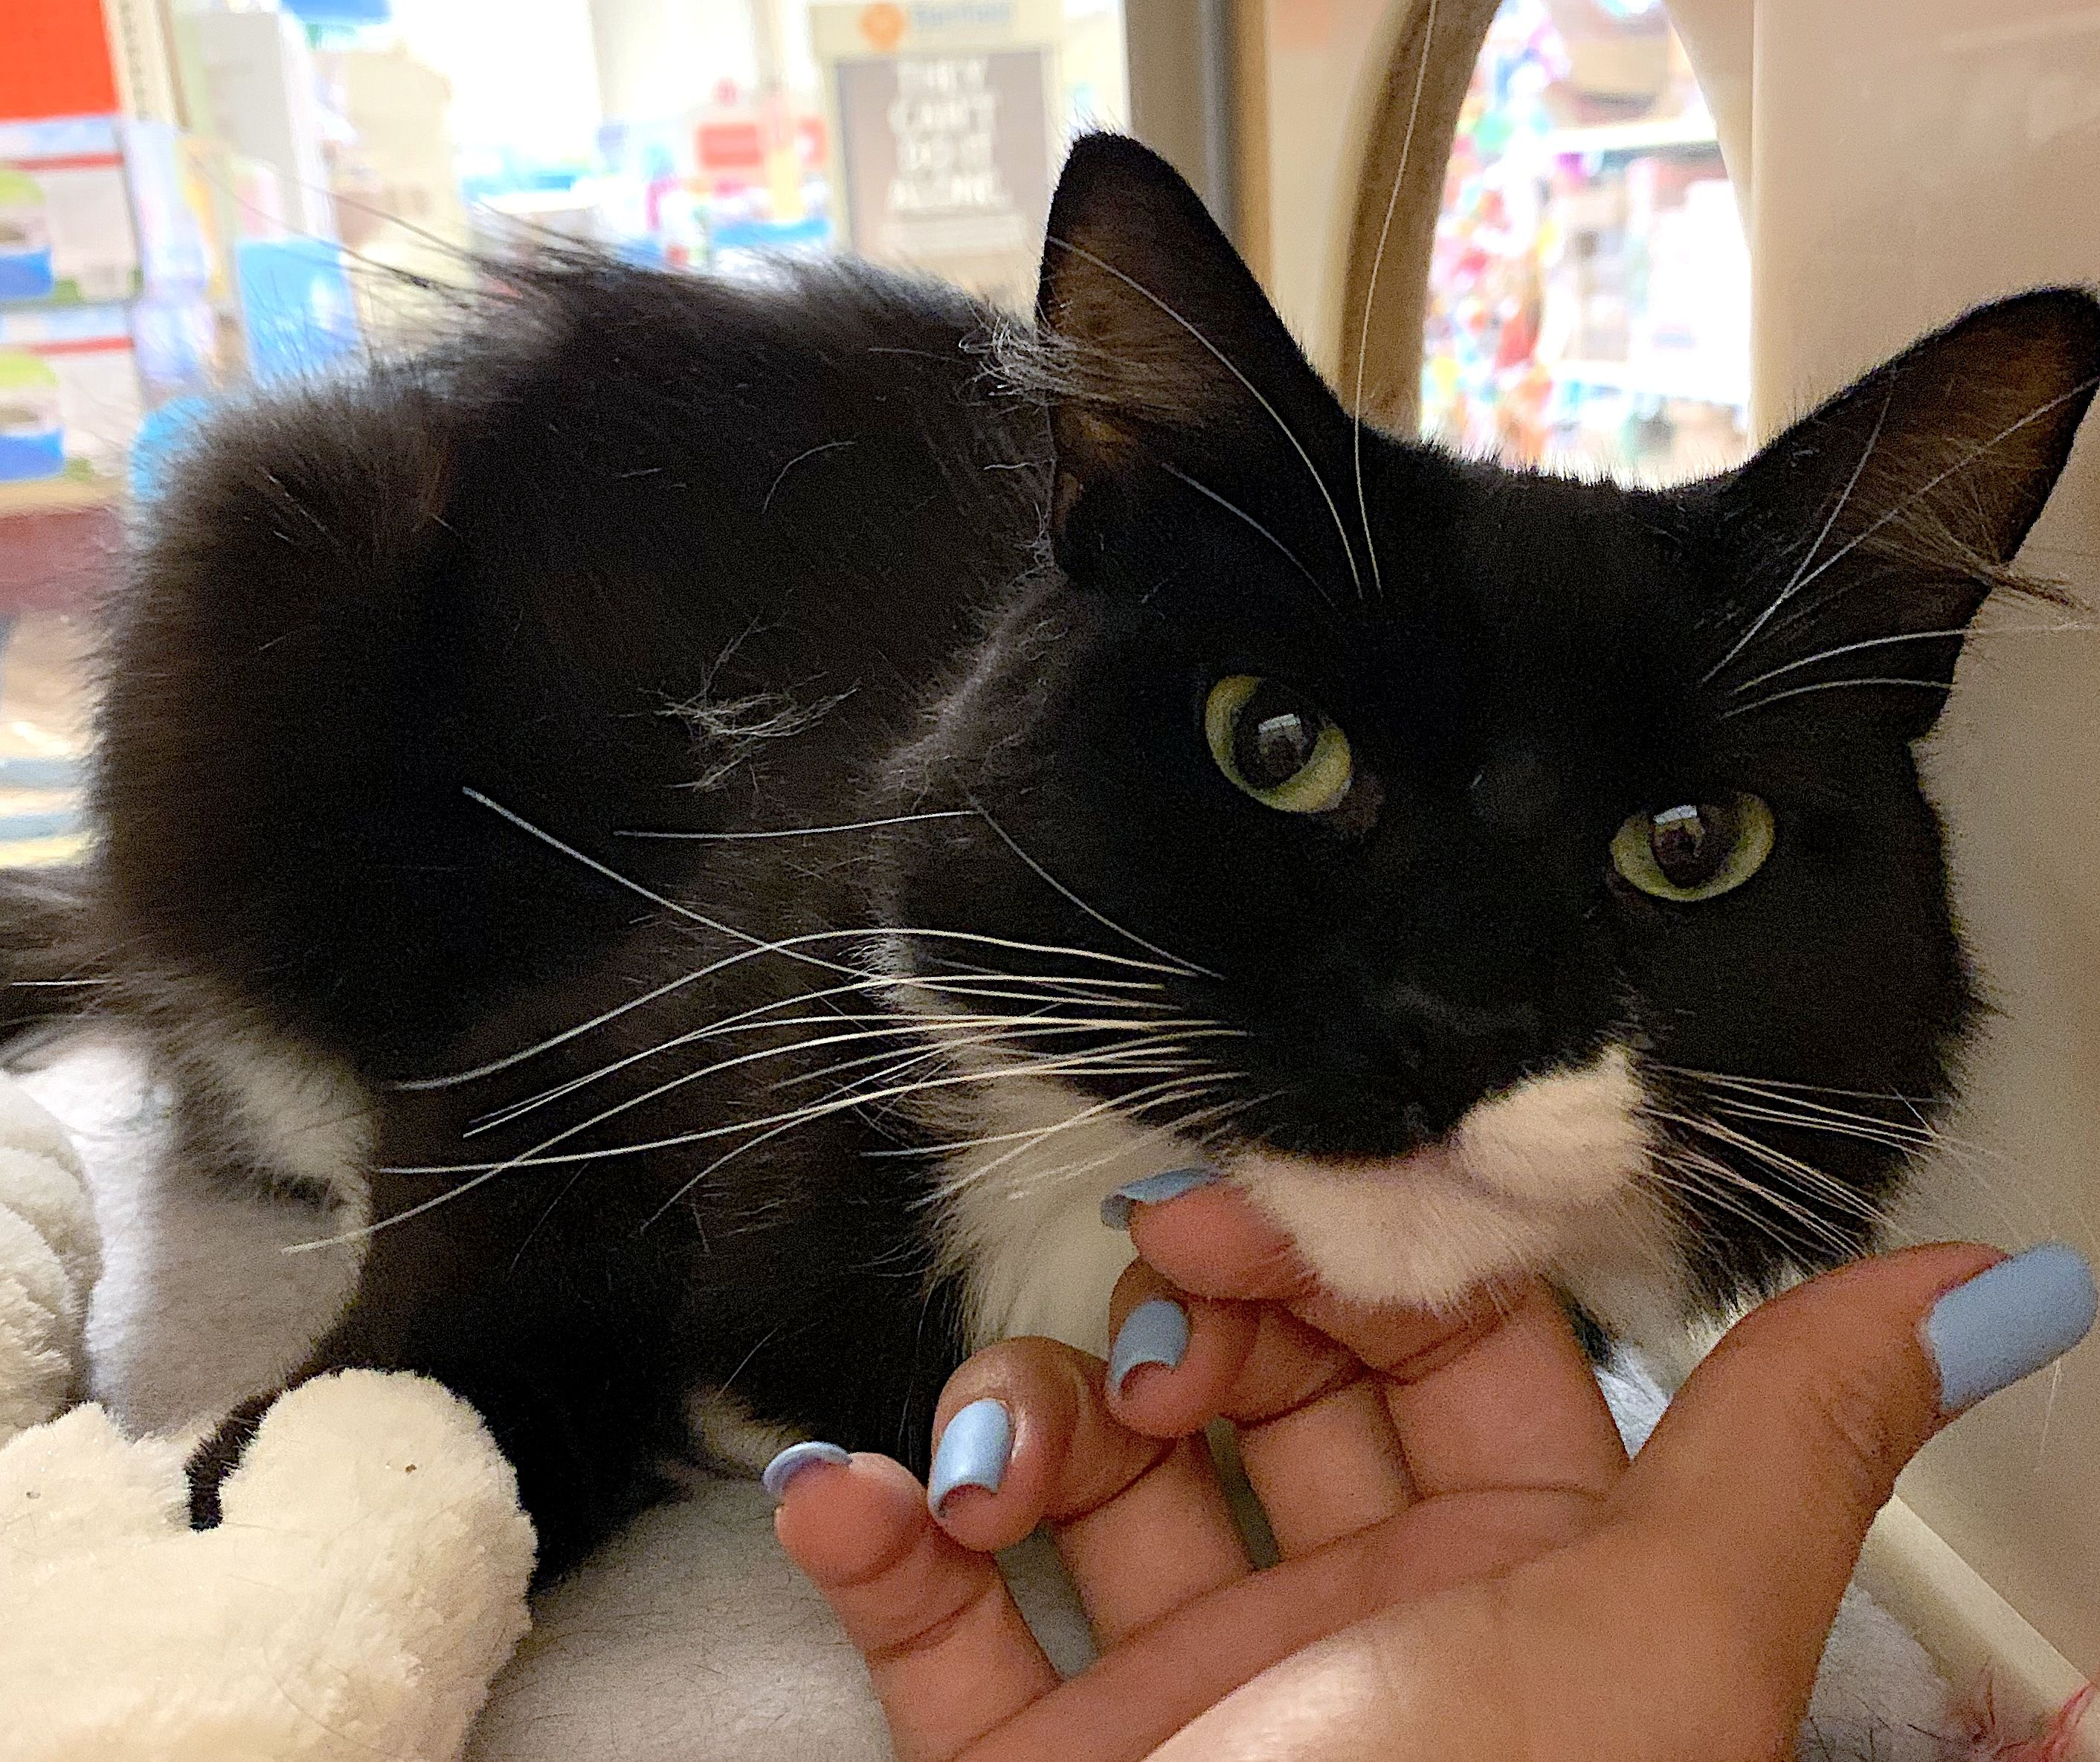 Sadie Is Is Sweet Affectionate And Always Purrs When Pet Adopt Her At Brea Ca Petsmart Cats Kittens Feral Cats Kitty